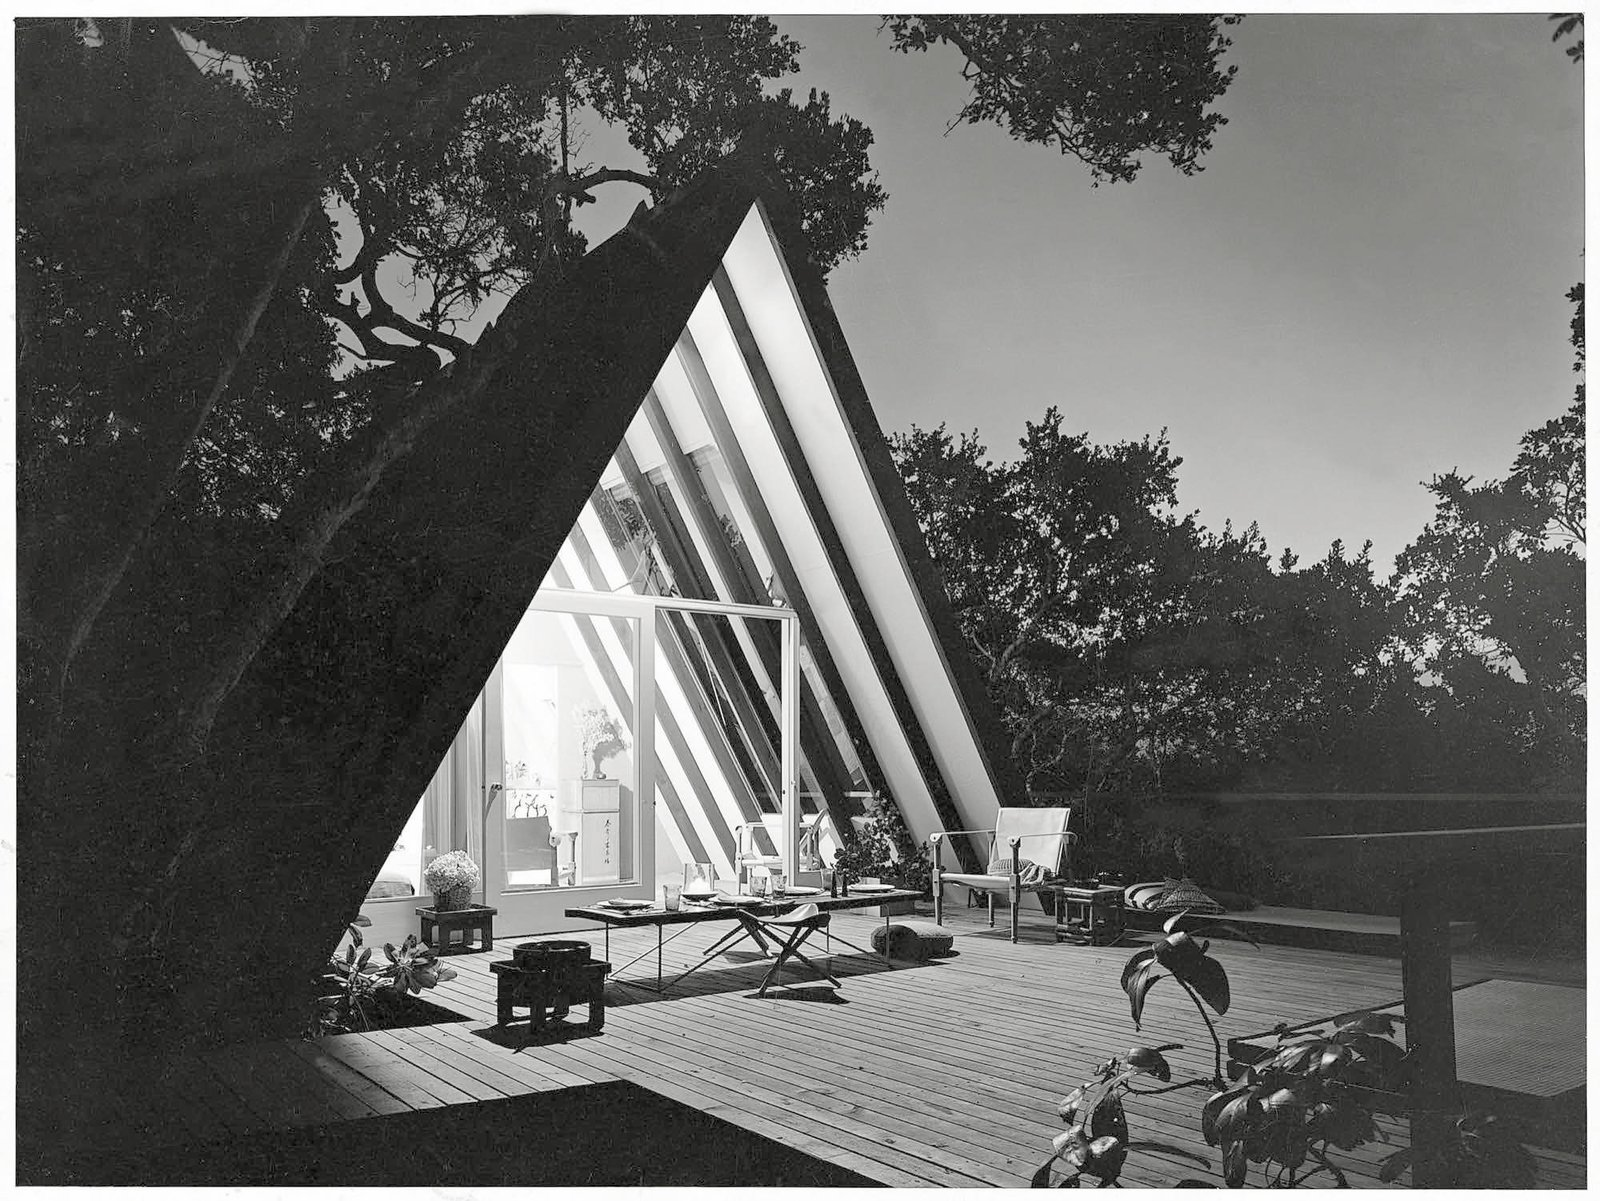 John Campbell's Leisure House, Mill Valley , California, 1953 / Photo Courtesy of Princeton Architectural Press  Spawned by postwar affluence, A-frame cabins became the quintessential American vacation home of the 1950s and 60s. A look at what made these icons of middle-class leisure immensely popular then, and what it is like to remodel and live in one today. Best Photos